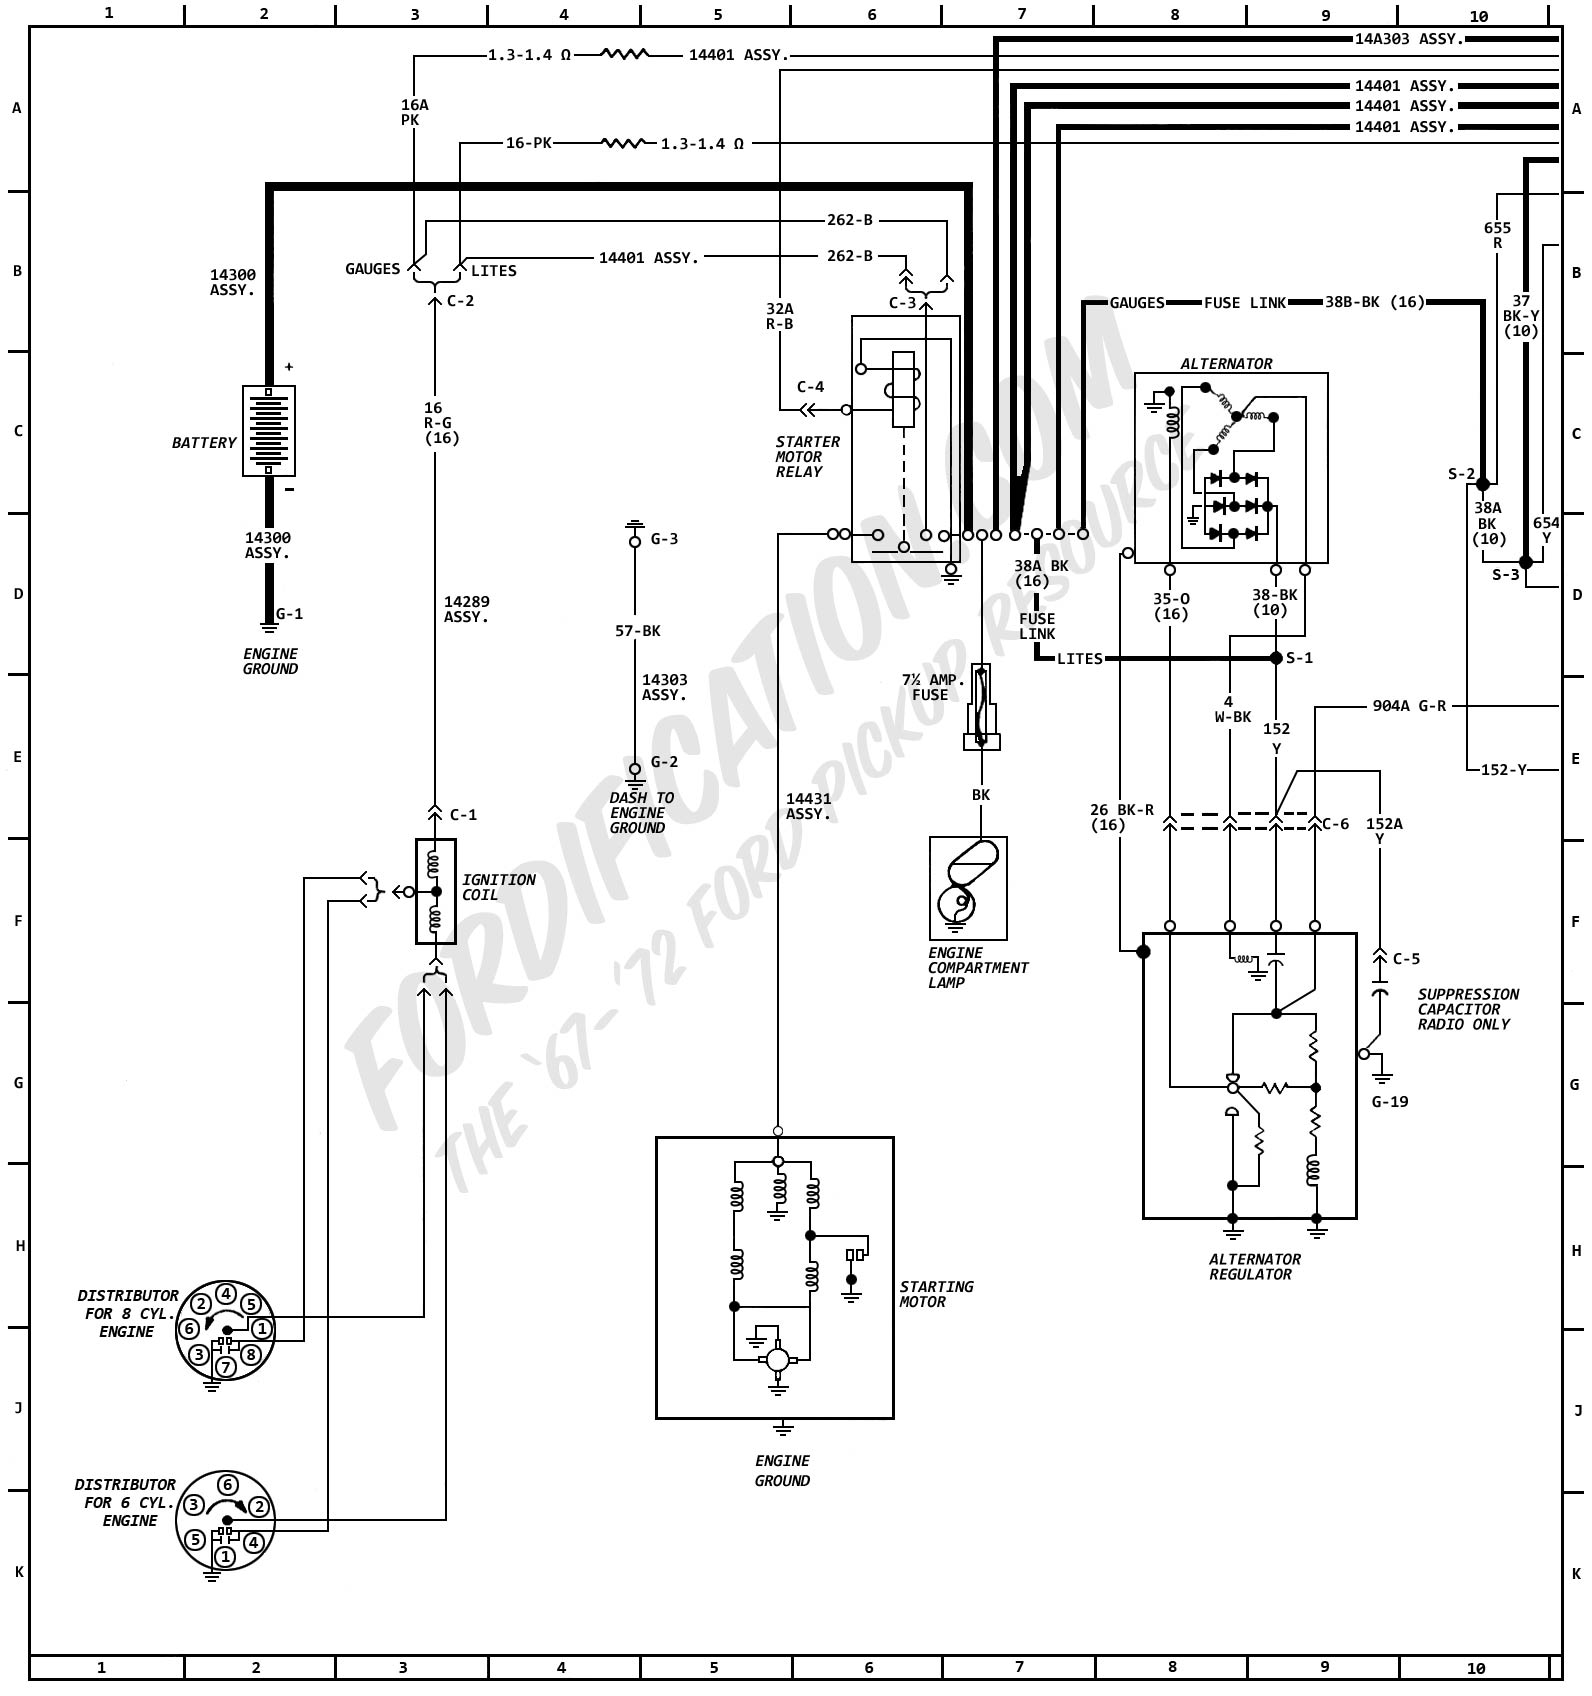 1972MasterWiring_01 1972 ford truck wiring diagrams fordification com 1985 ford truck wiring diagram at bayanpartner.co